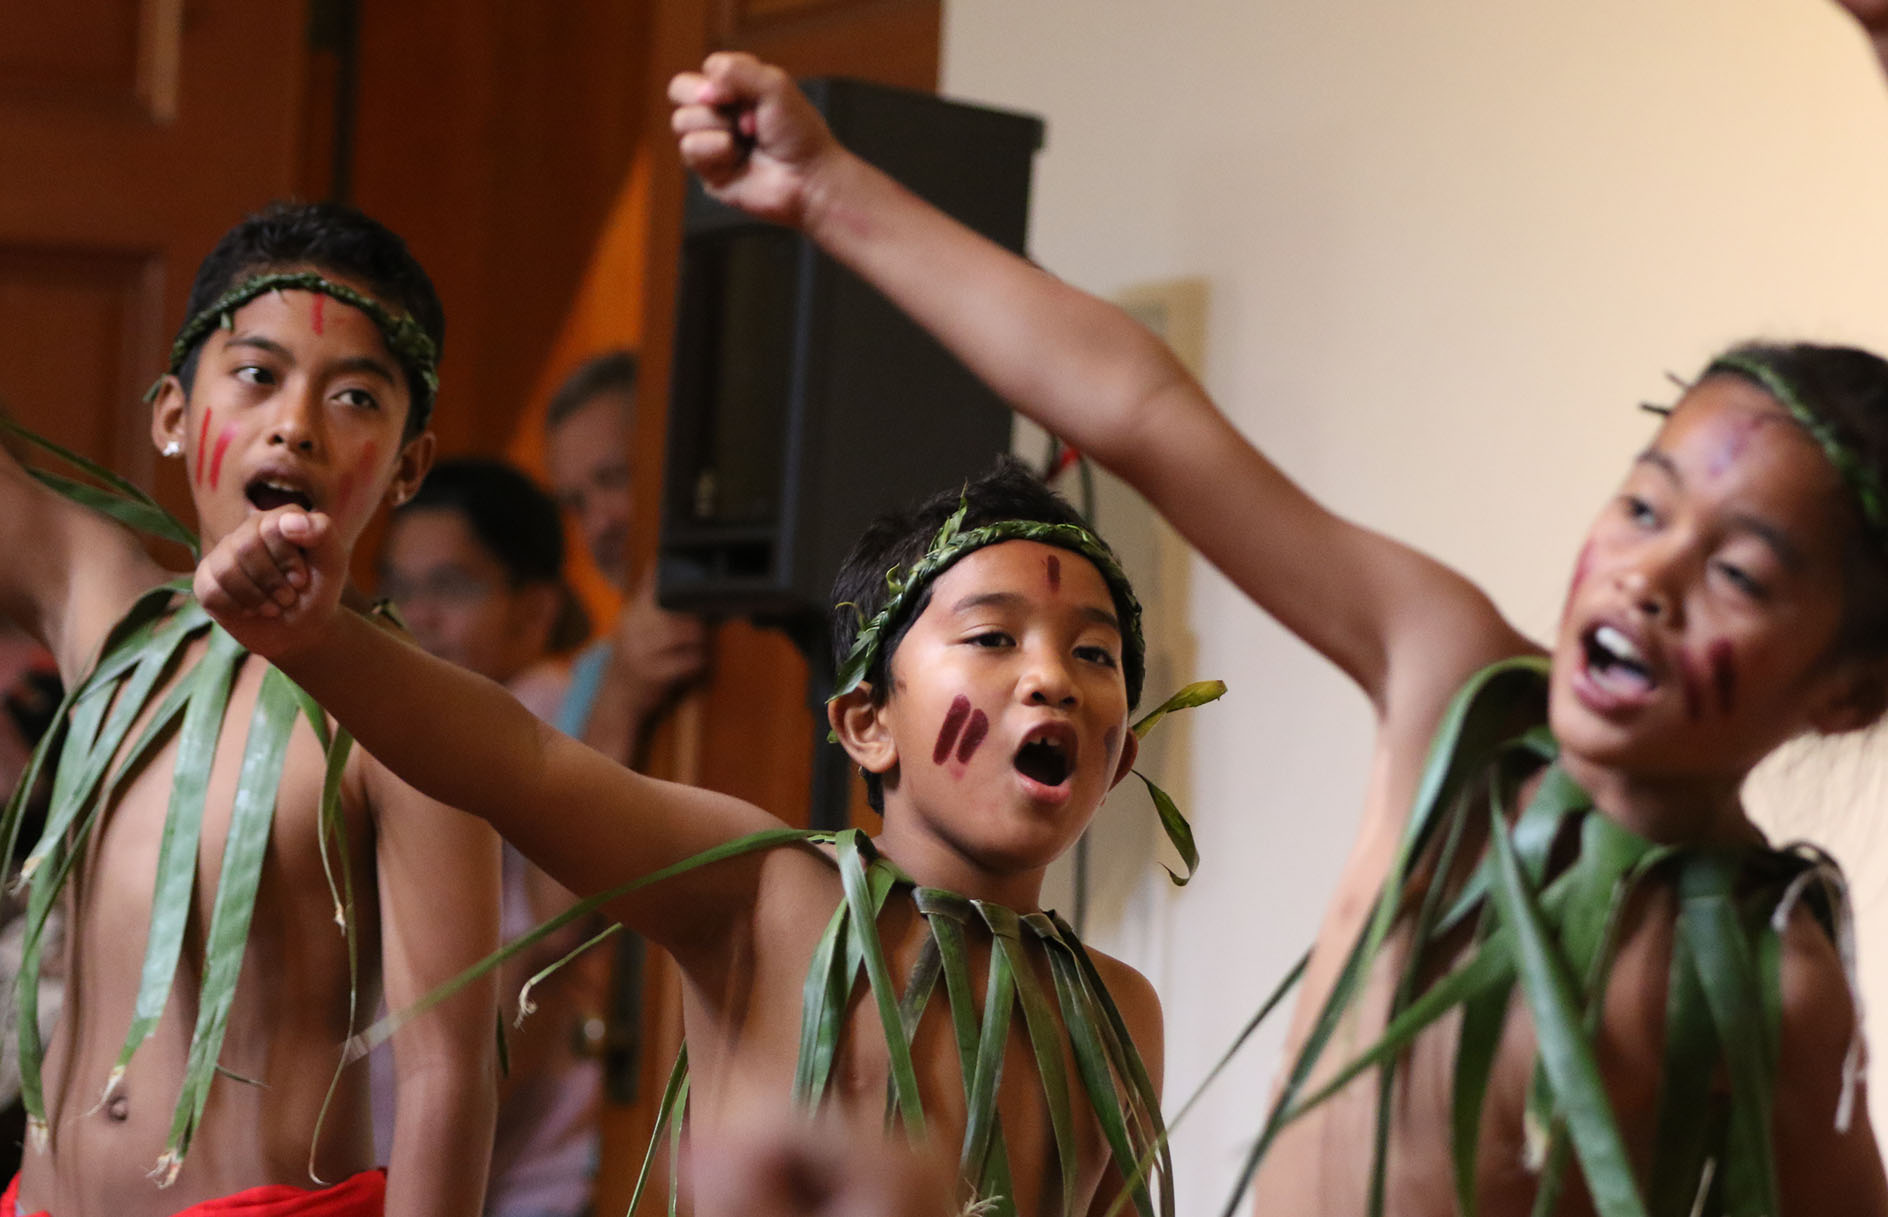 """<p>Young dancers from the Pacific Voices group performed at the """"Celebrate Micronesia"""" event at the Honolulu Museum of Art School in March, which celebrated the broad diversity of Micronesian cultures.</p>"""